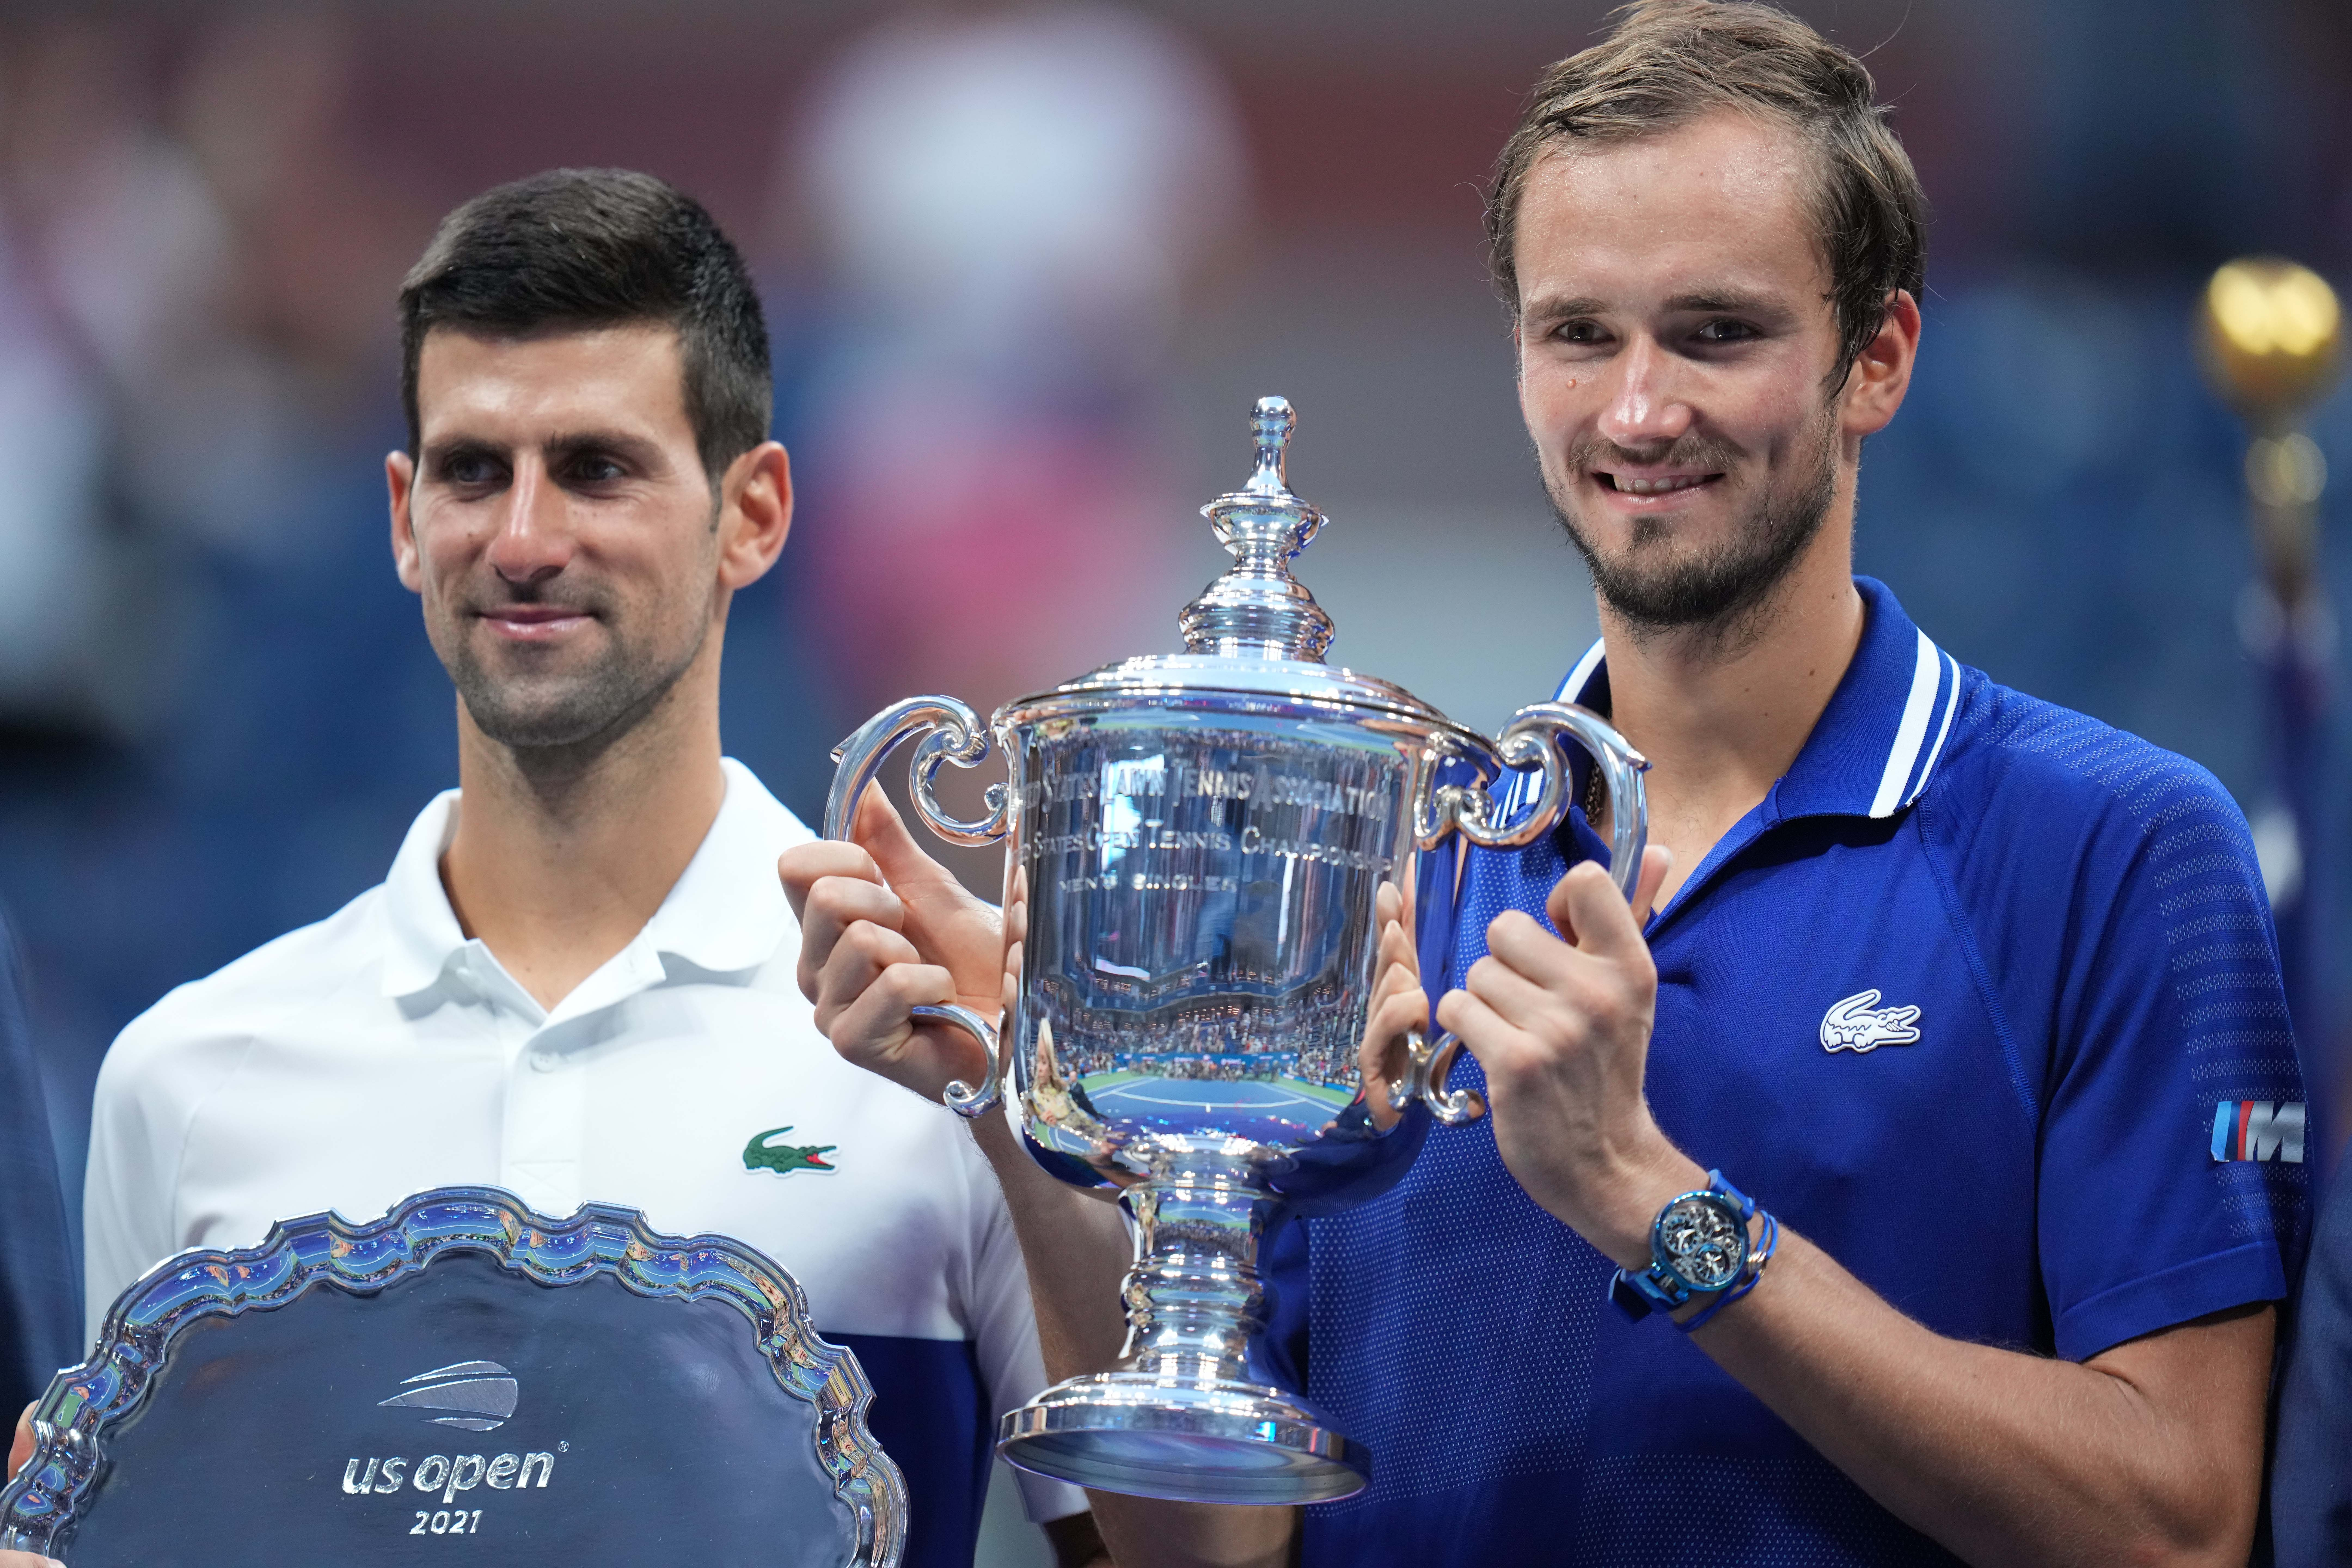 Sep 12, 2021; Flushing, NY, USA; (L-R) Novak Djokovic of Serbia and Daniil Medvedev of Russia celebrate with the finalist and championship trophies, respectively, after their match in the men's singles final on day fourteen of the 2021 U.S. Open tennis tournament at USTA Billie Jean King National Tennis Center. Mandatory Credit: Danielle Parhizkaran-USA TODAY Sports/File photo